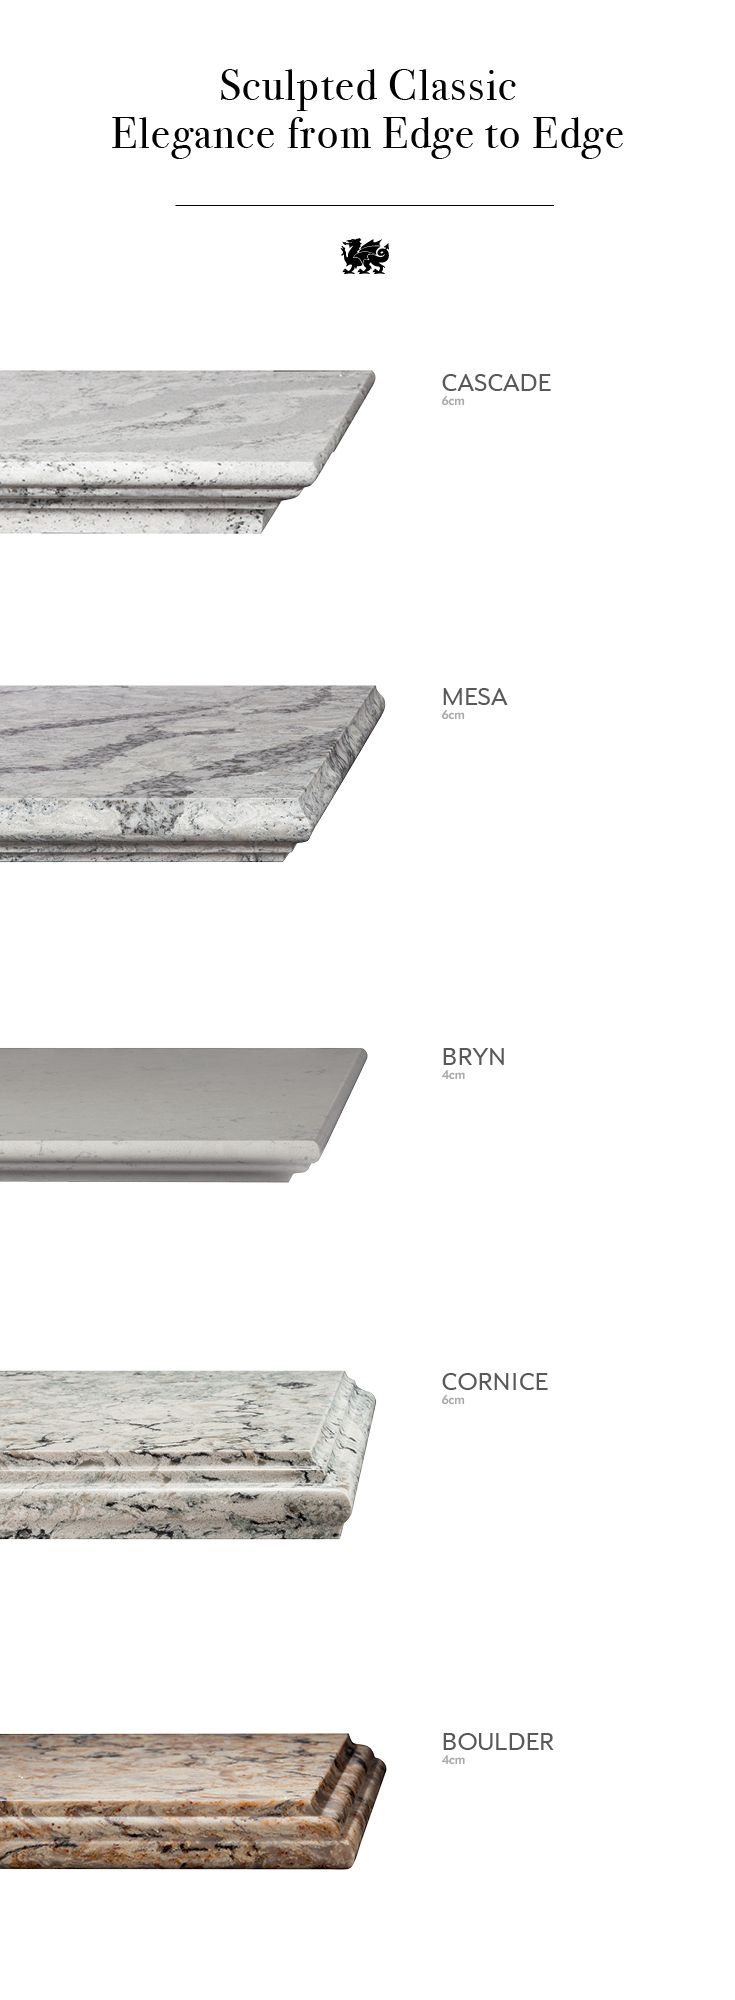 Grigio msi quartz denver shower doors amp denver granite countertops - The Right Quartz Countertop Edge Profile Can Add An Air Of Elegance To Your Classic Kitchen